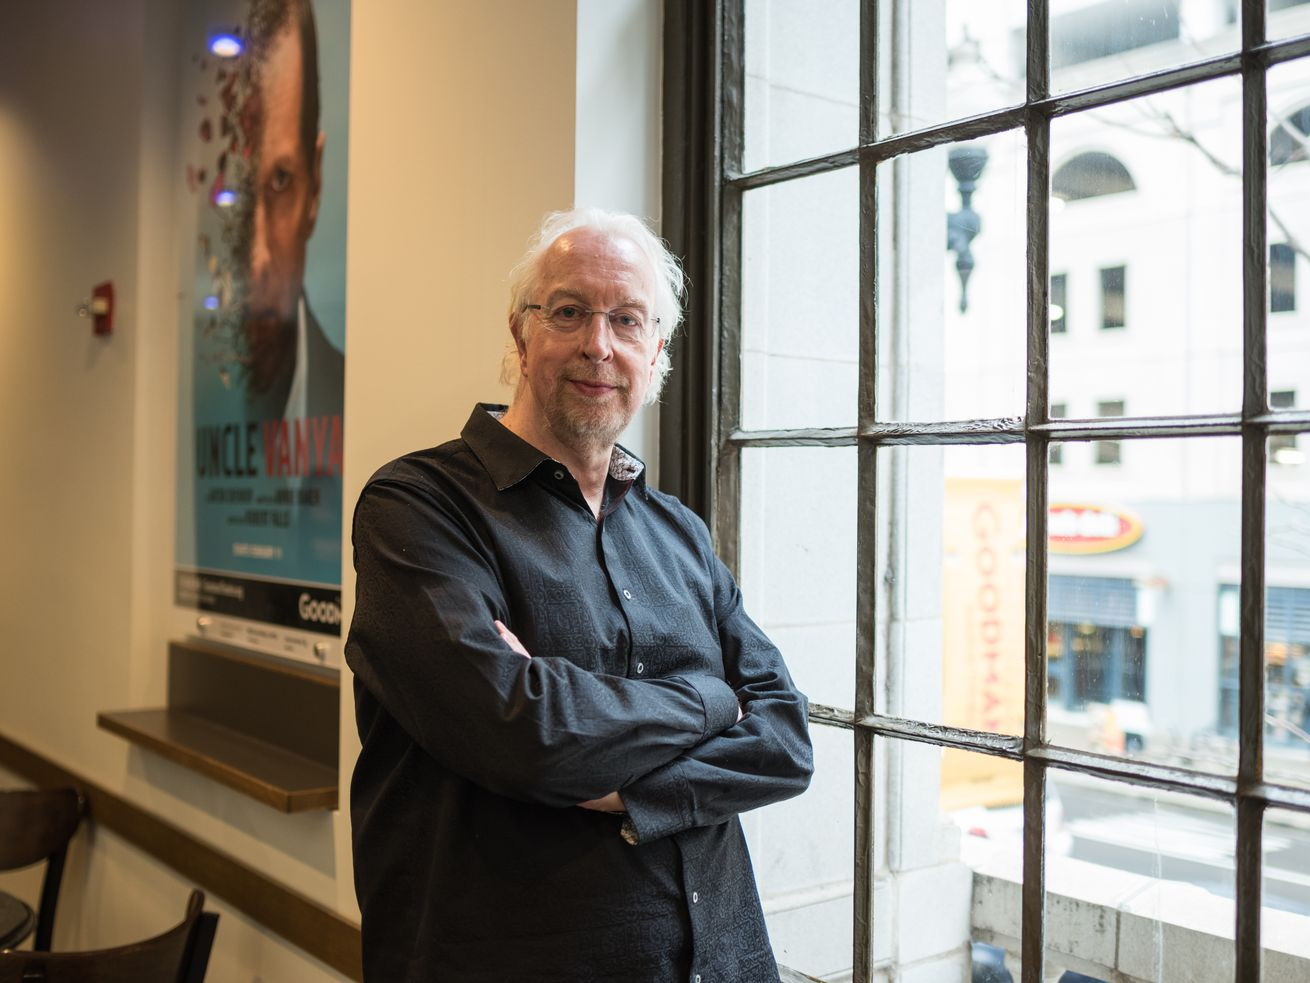 Robert Falls, photographed in 2017 at the Goodman Theatre, is stepping down as the theater's artistic director.